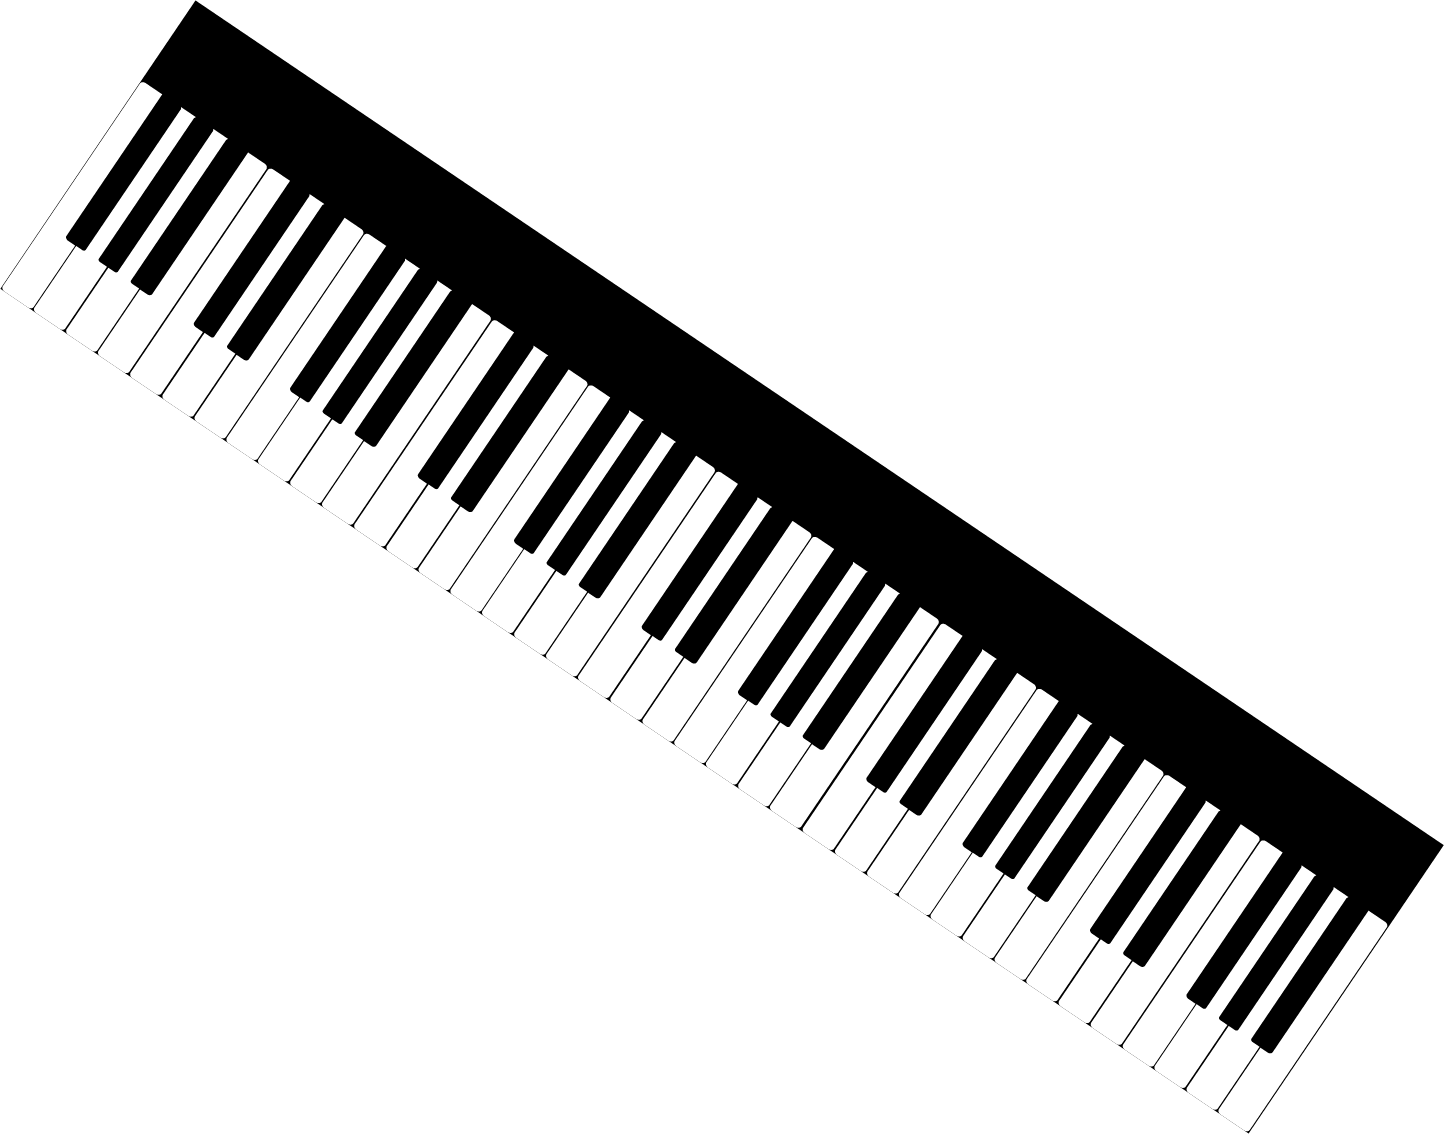 piano vector png 10 free Cliparts | Download images on ...